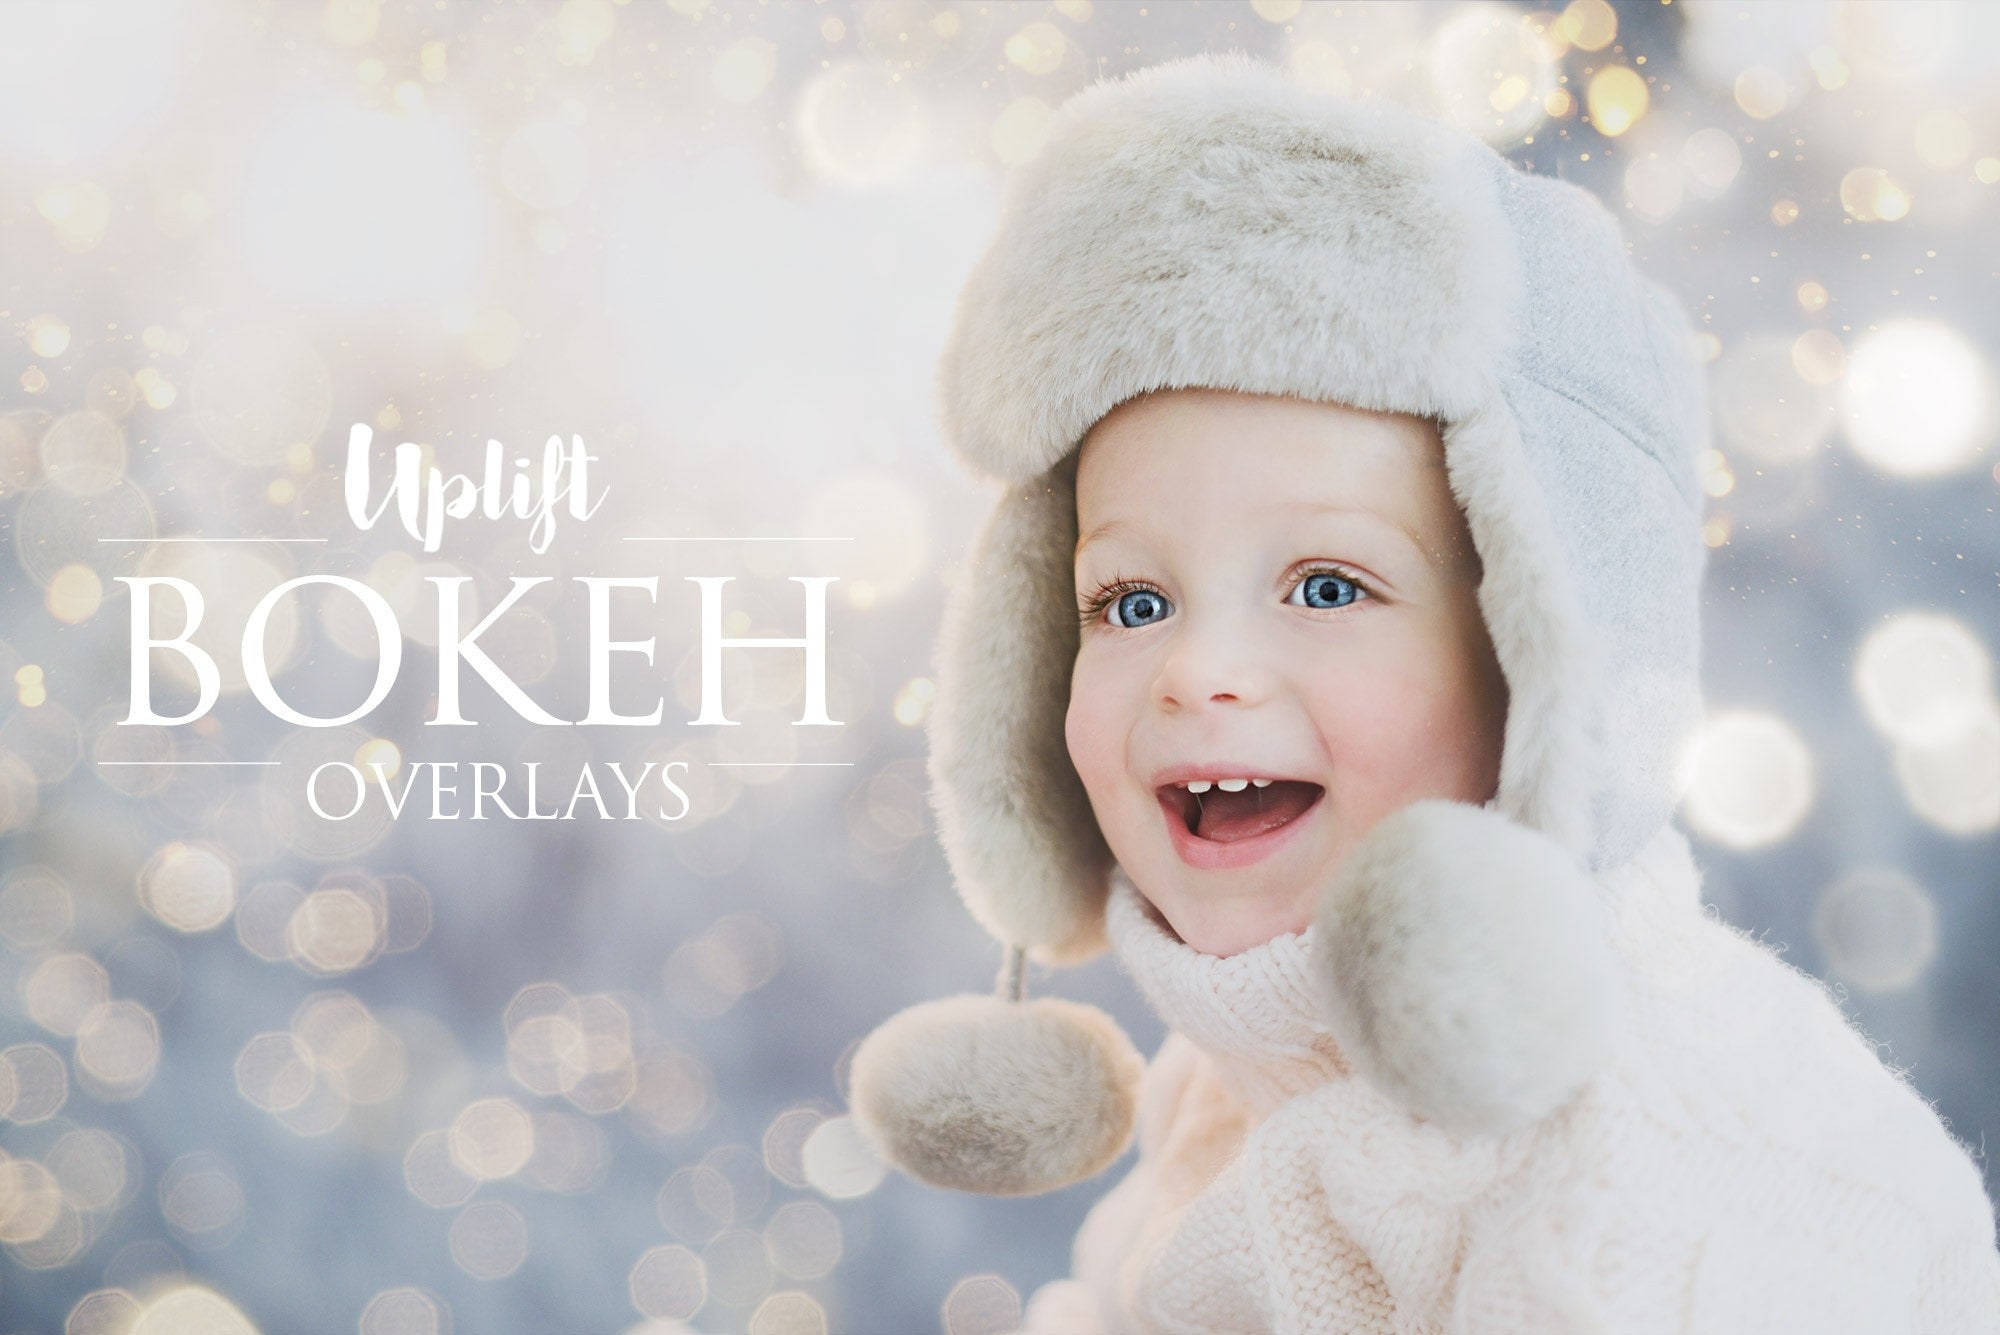 Bokeh overlays collection uplift photoshop actions photoshop overlays and lightroom presets